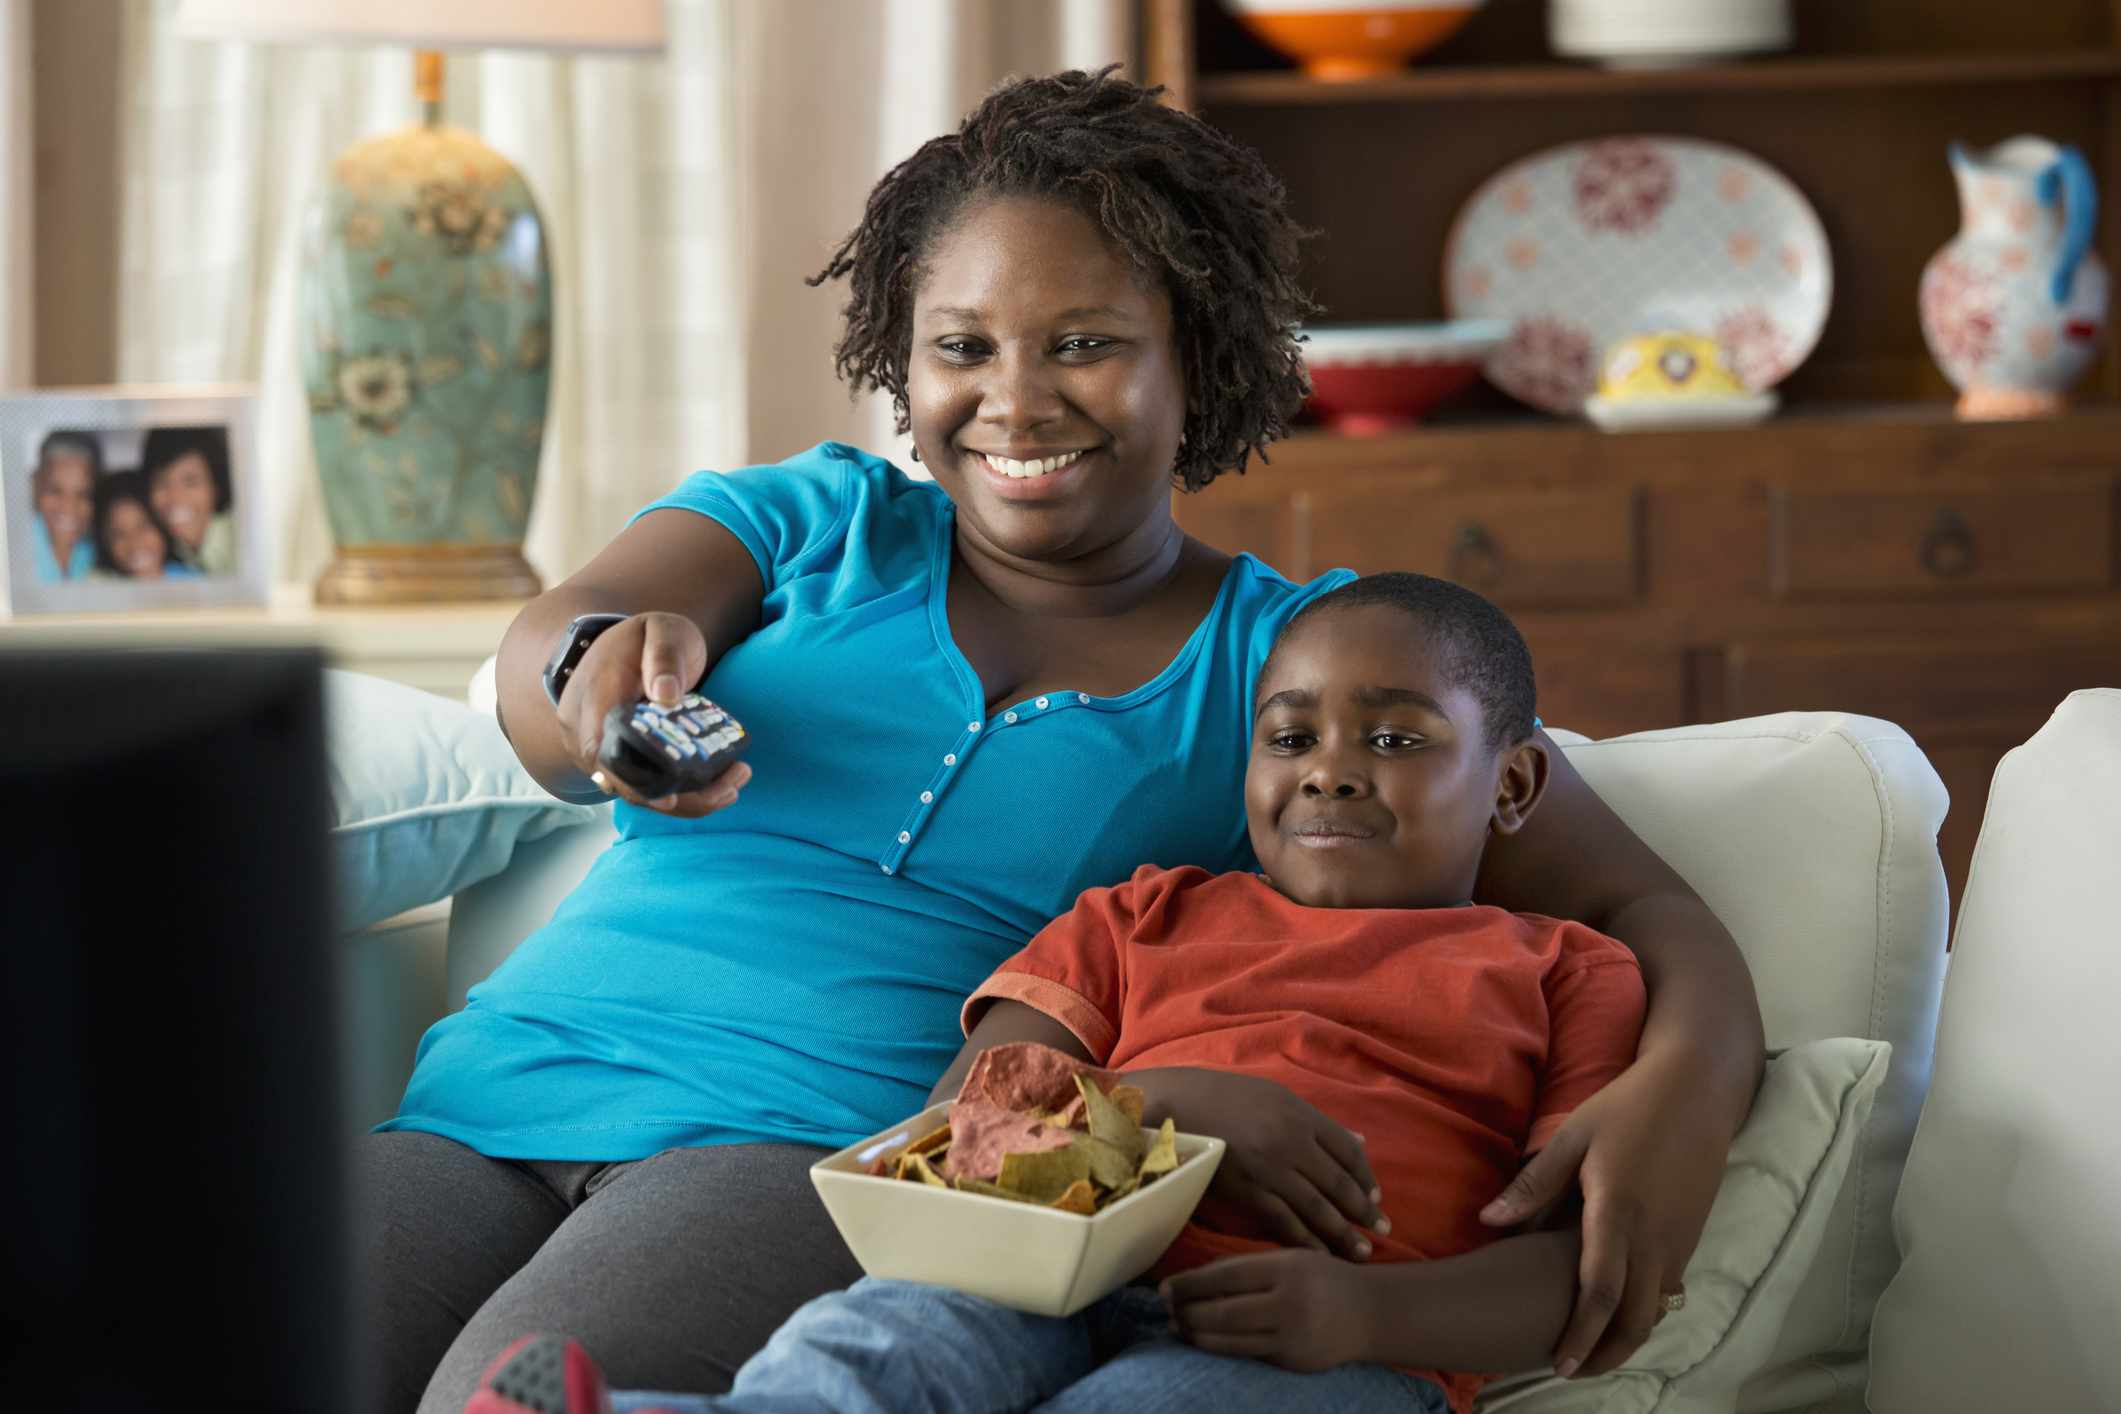 Black mother and son watching television together